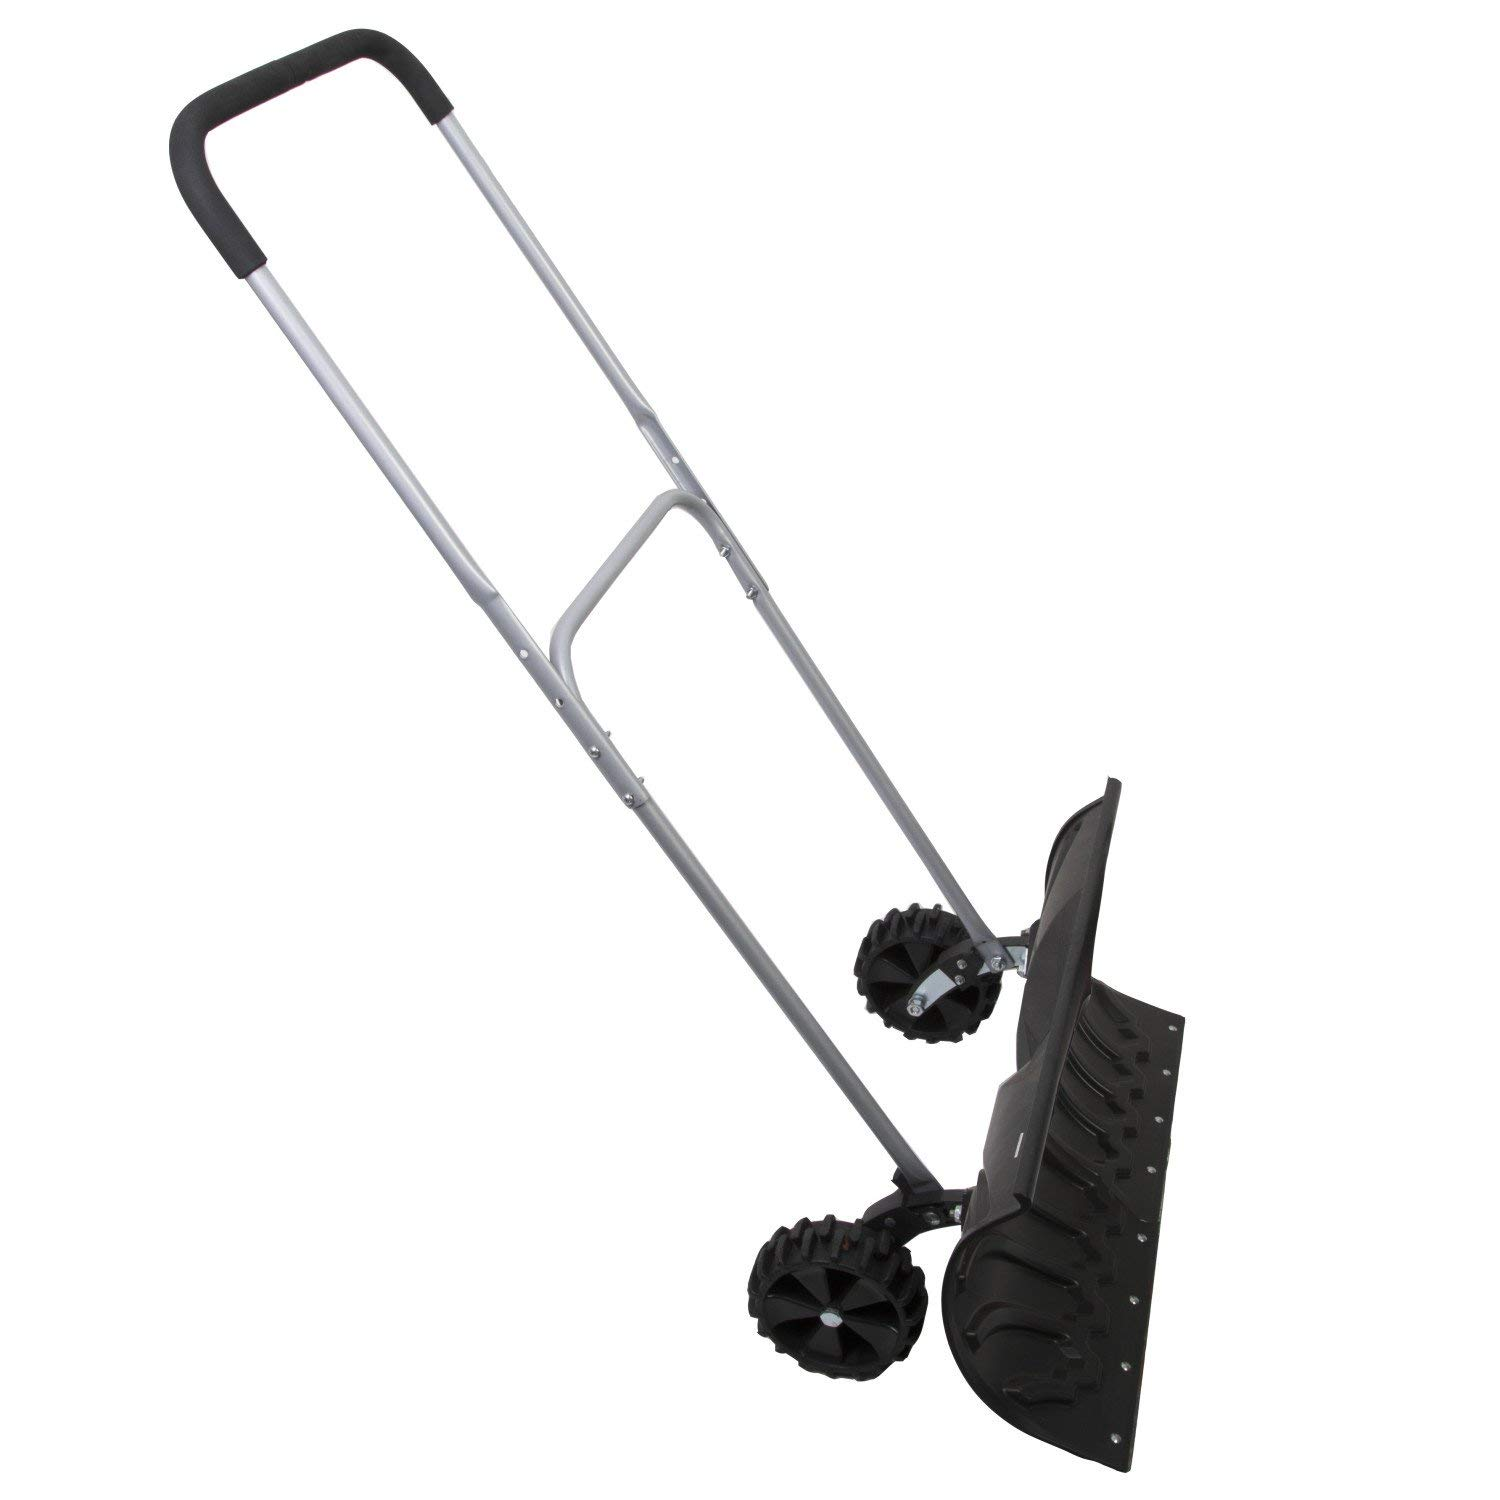 Top 10 Best Snow Shovel (2020 Reviews & Buying Guide) 1